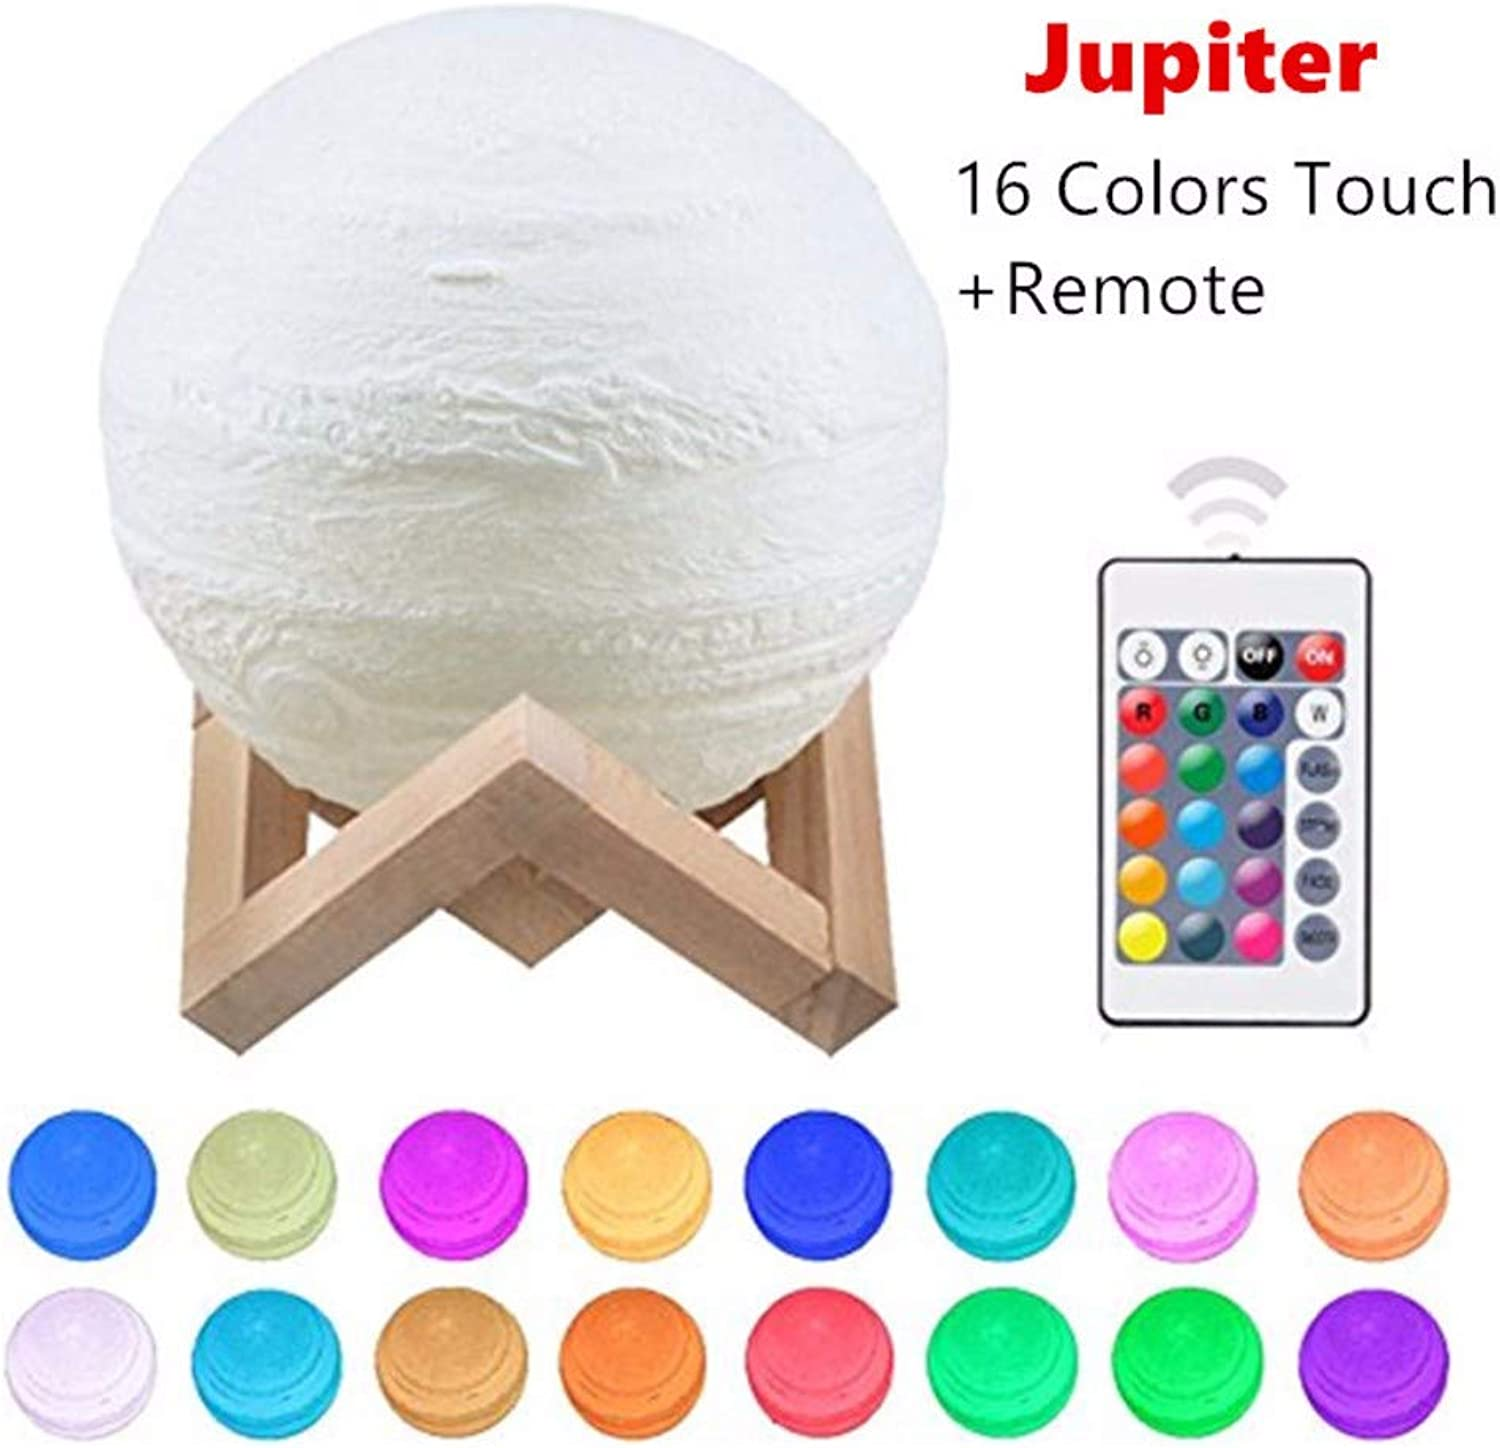 DZXGY 16color Dropship 3D Print Jupiter Lamp colorful Moon Lamp Rechargeable Change Touch USB Led Night Light Home Decor Creative Baby Gift10cm